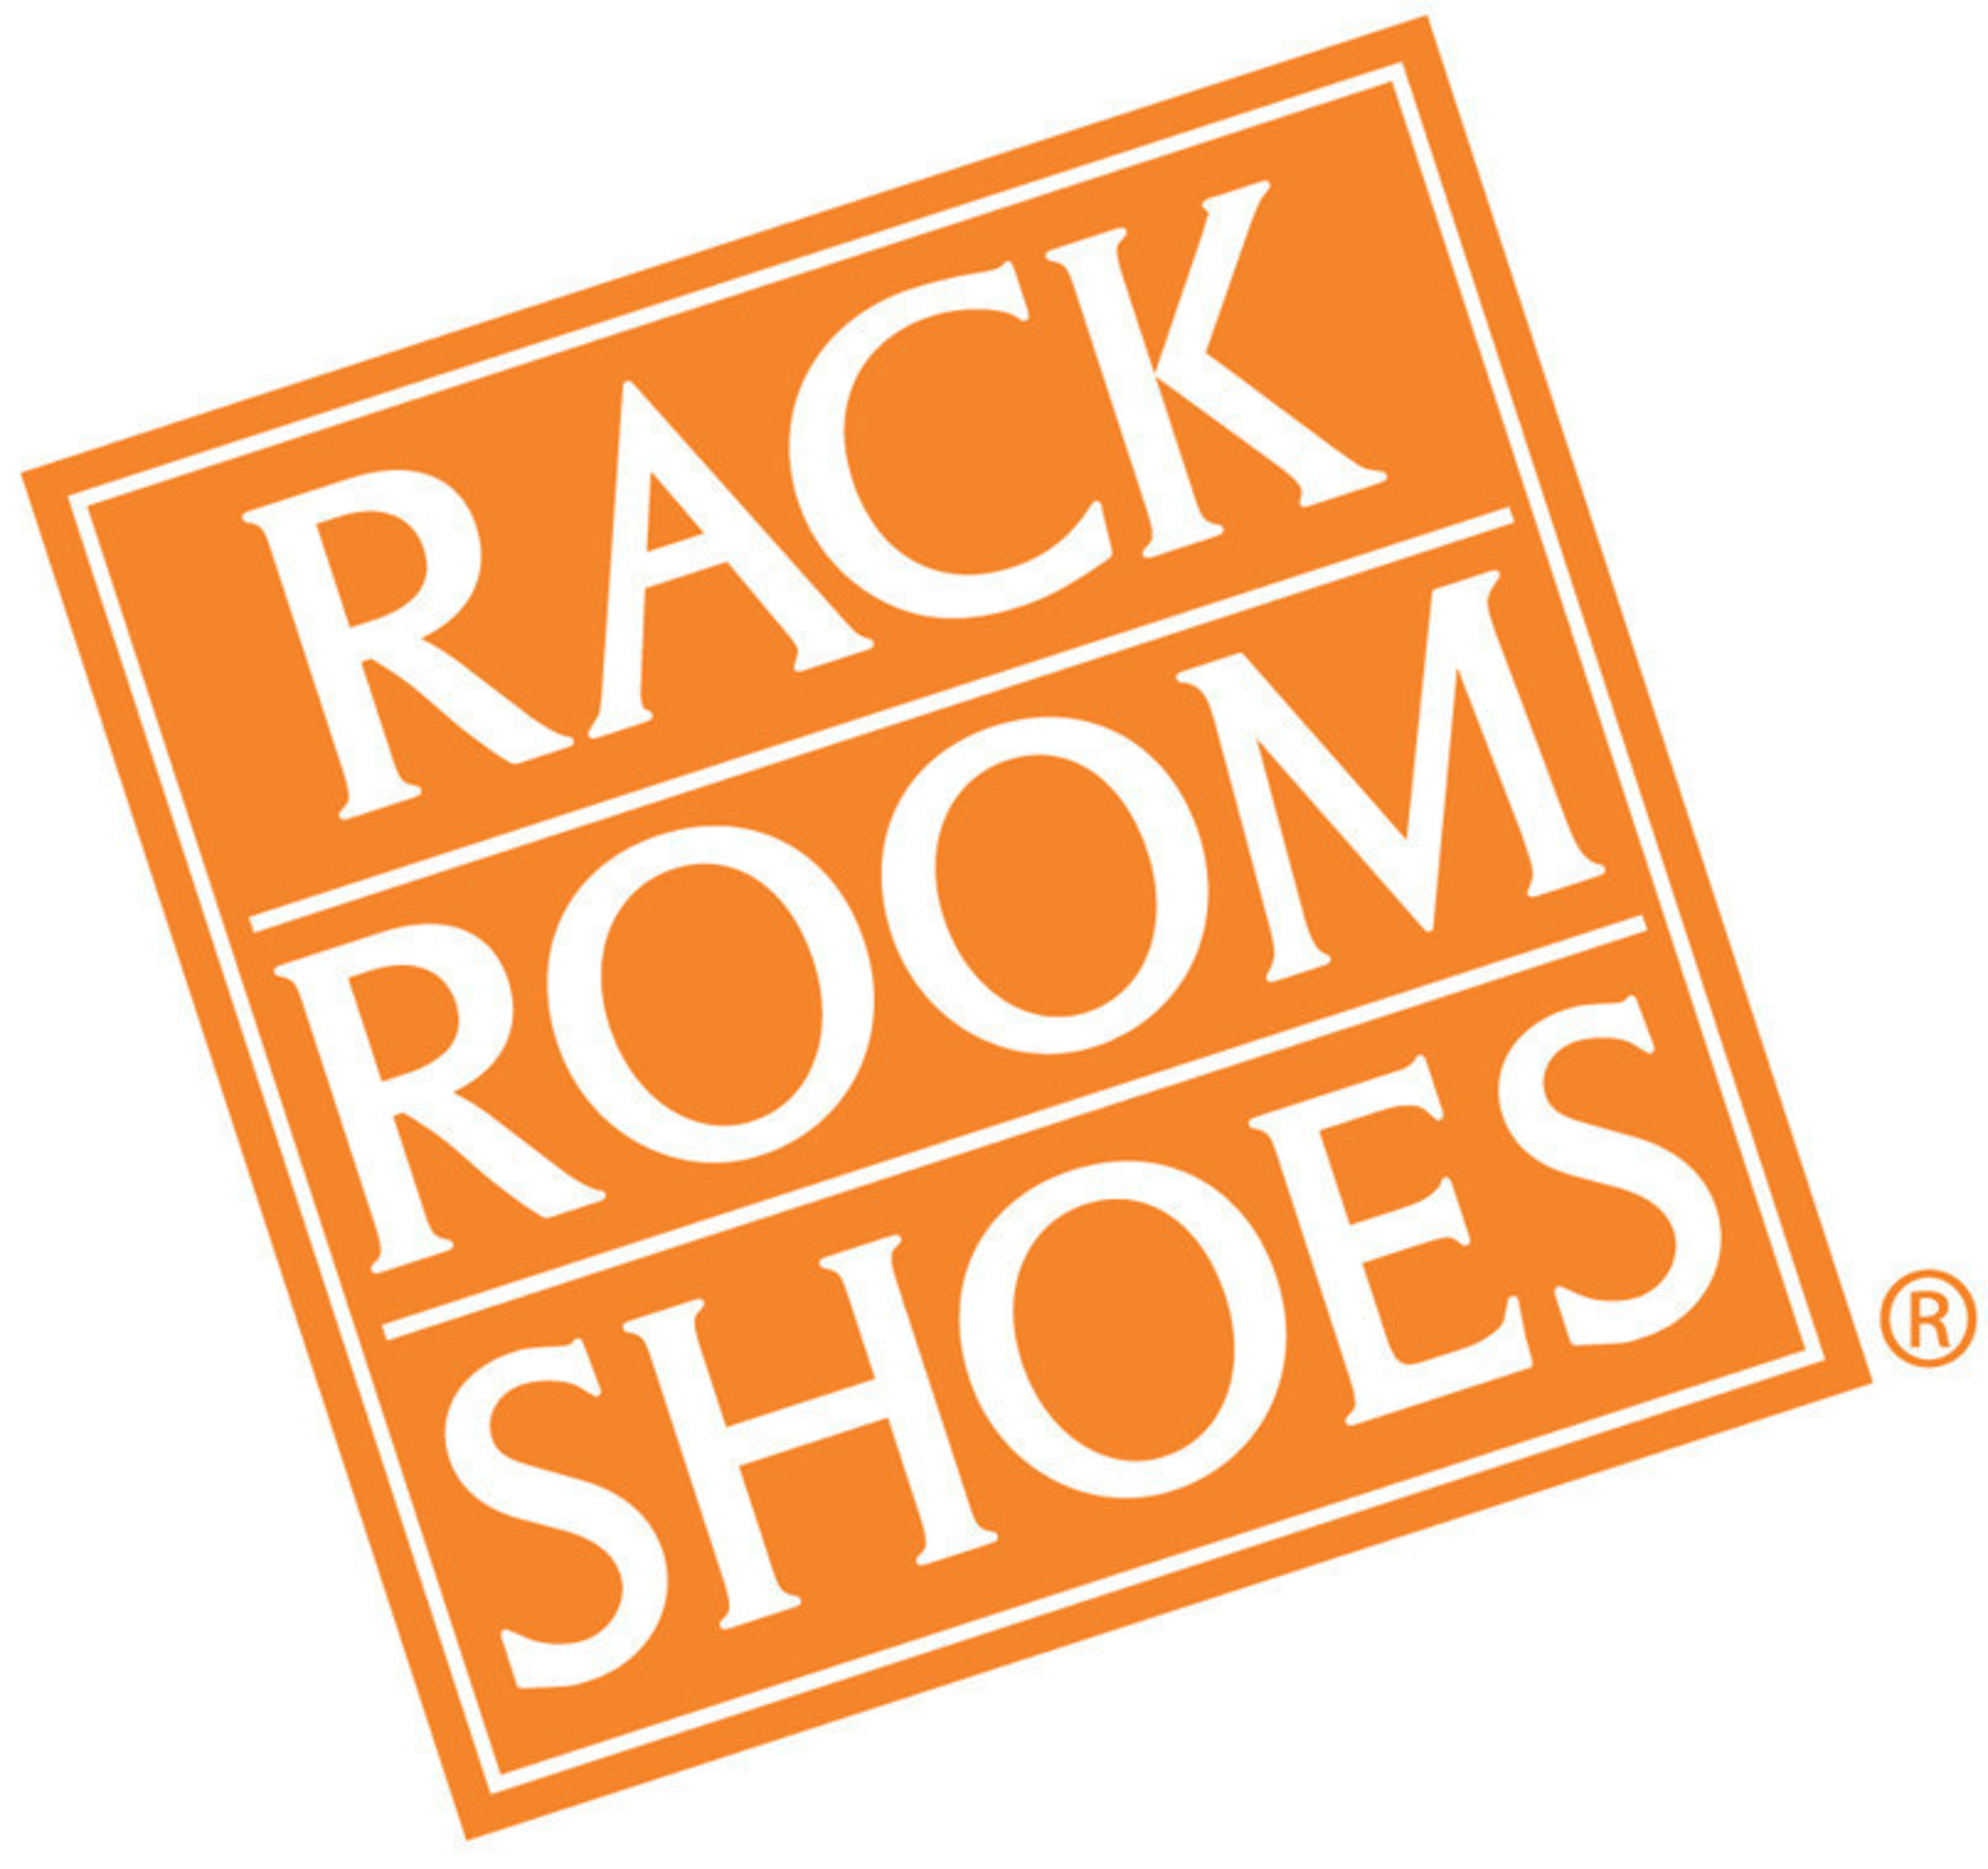 Known as an innovator in the shoe industry for more than 90 years, Rack Room Shoes offers nationally recognized and private brands of shoes for men, women and children in comfort, dress, casual and athletic categories.